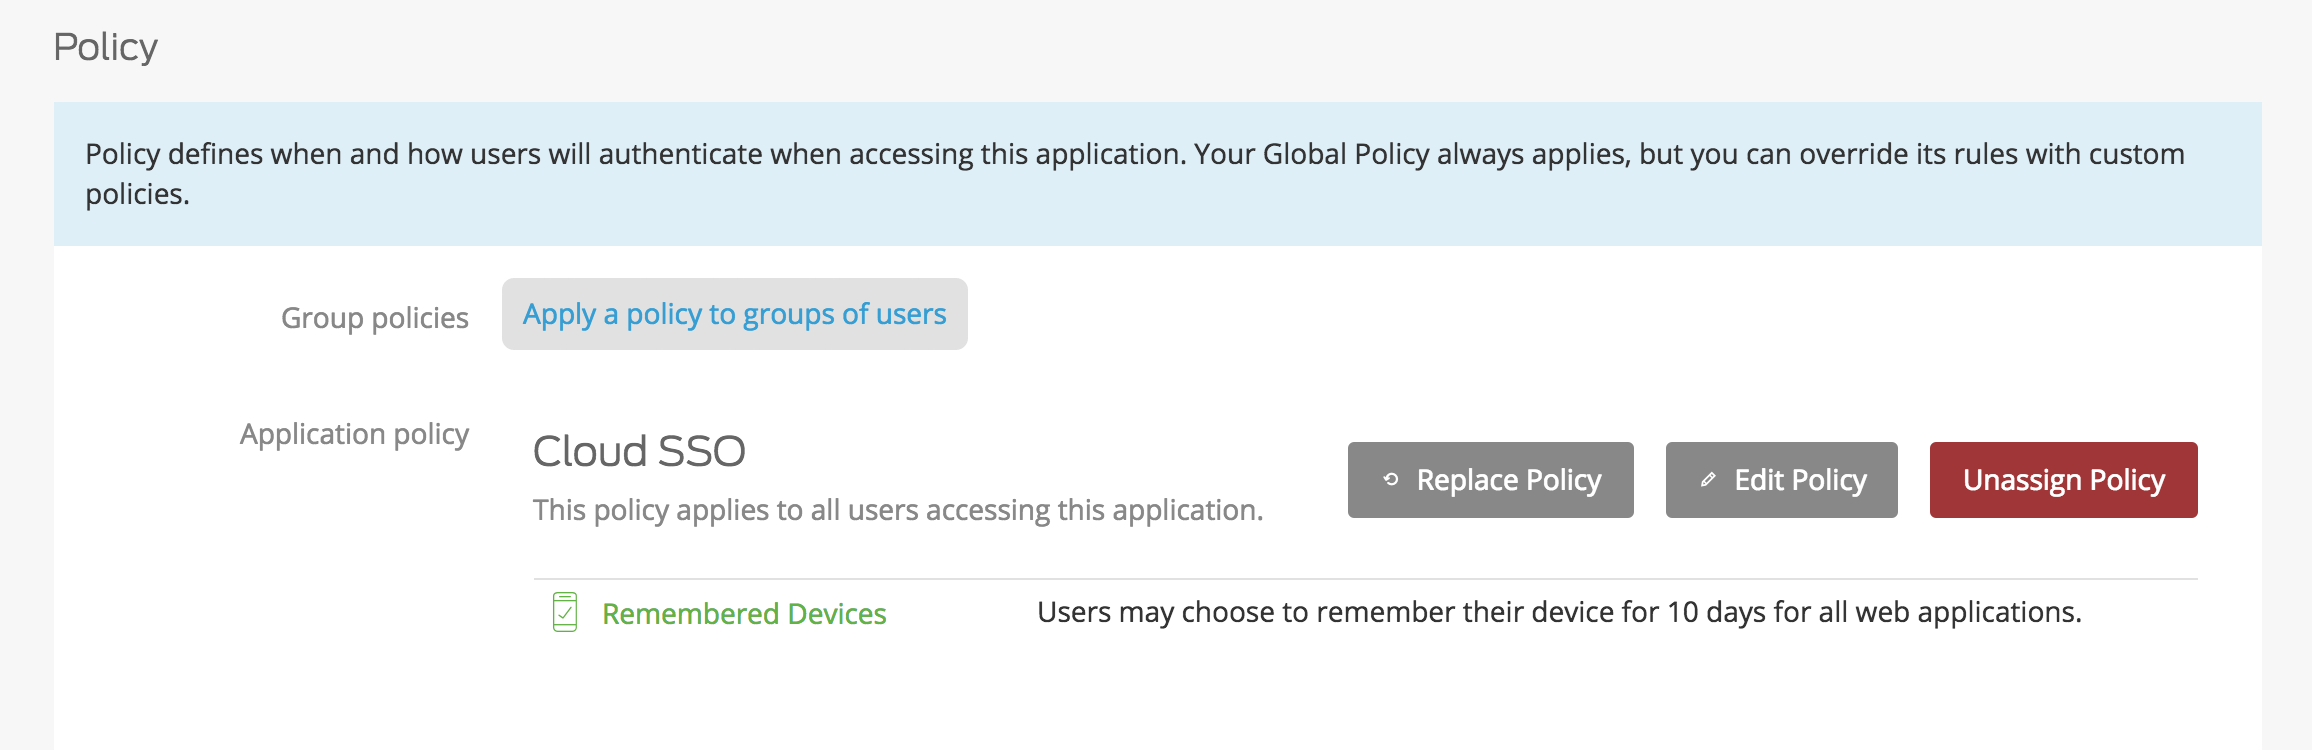 Cloud SSO Policy applied to Duo Access Gateway